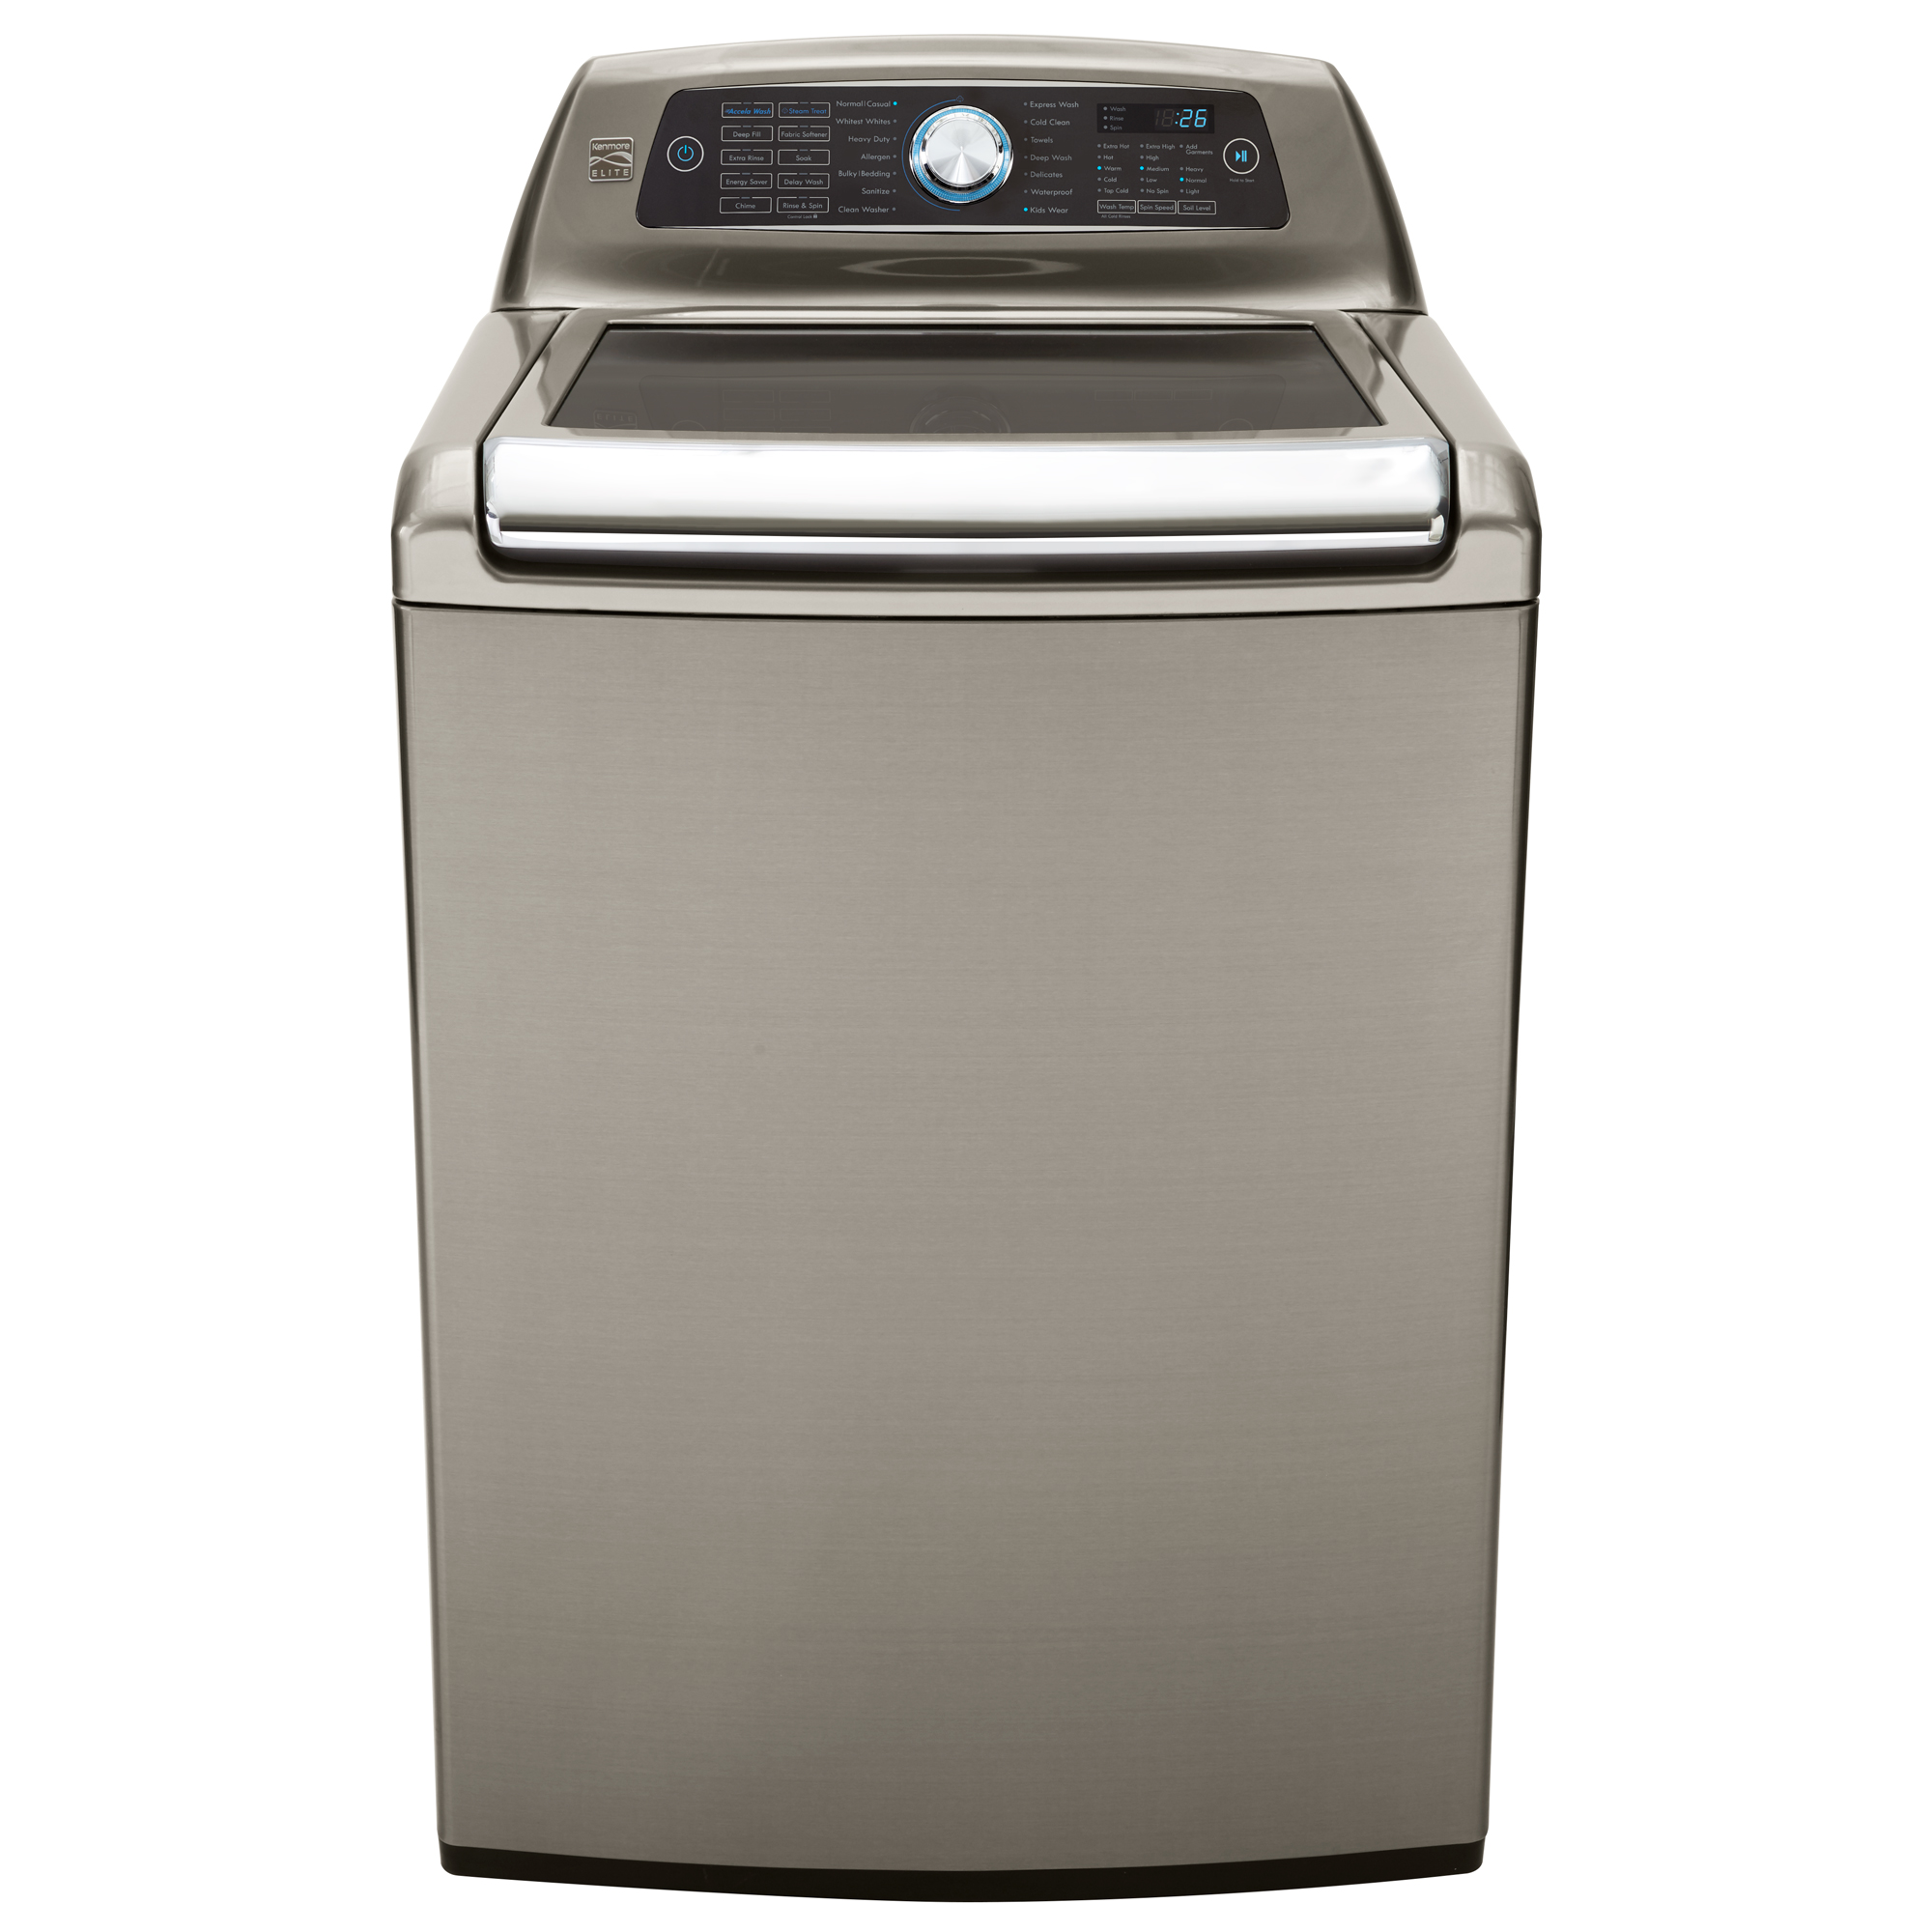 Kenmore Elite 31553 5.2 cu. ft. Top Load Washer w/Steam Treat® & Accela Wash® - Metallic Silver